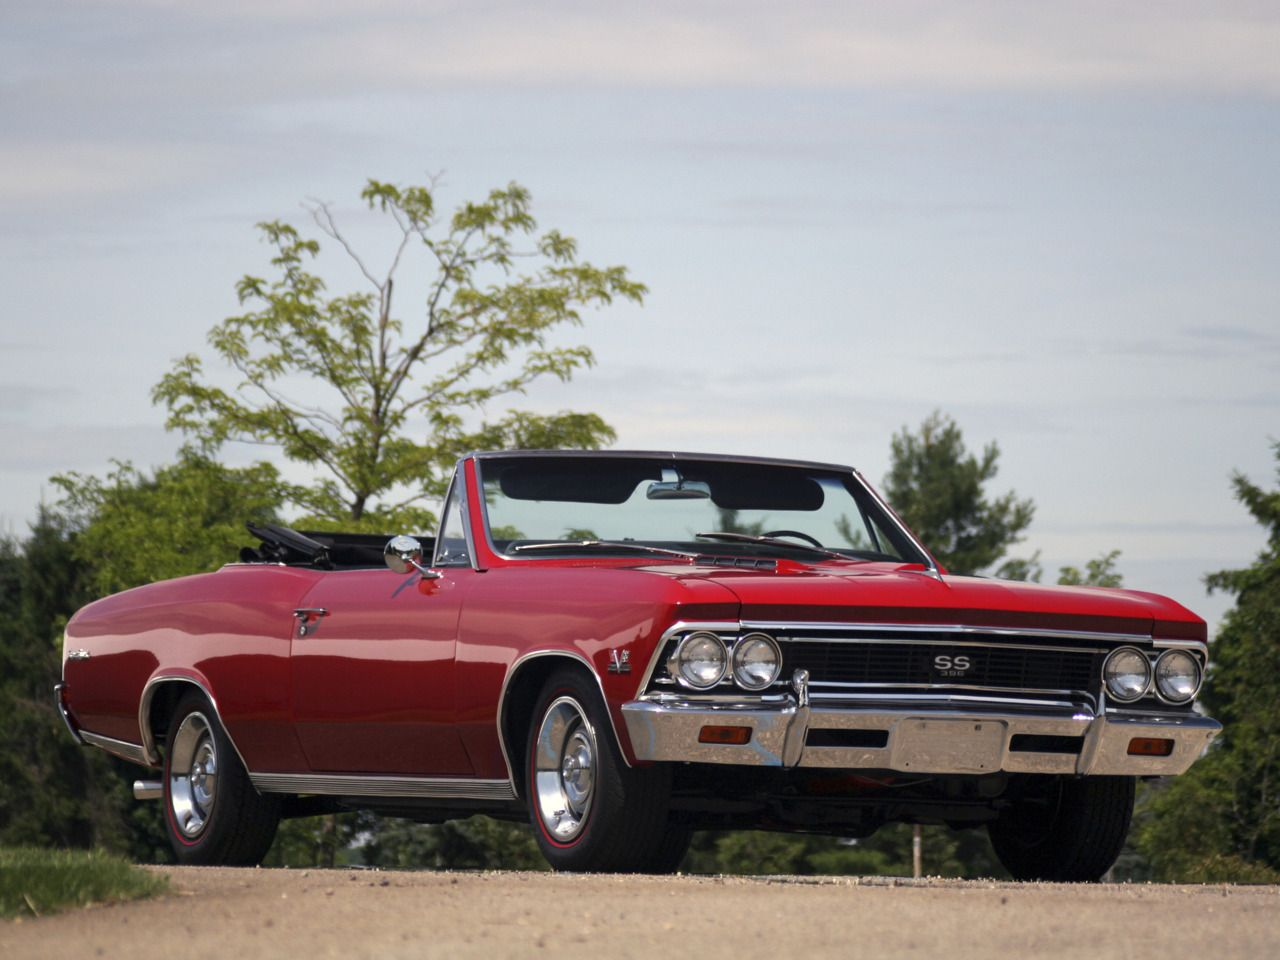 1966 Chevrolet Chevelle Ss 396 Convertible My Passions In Life Chevy